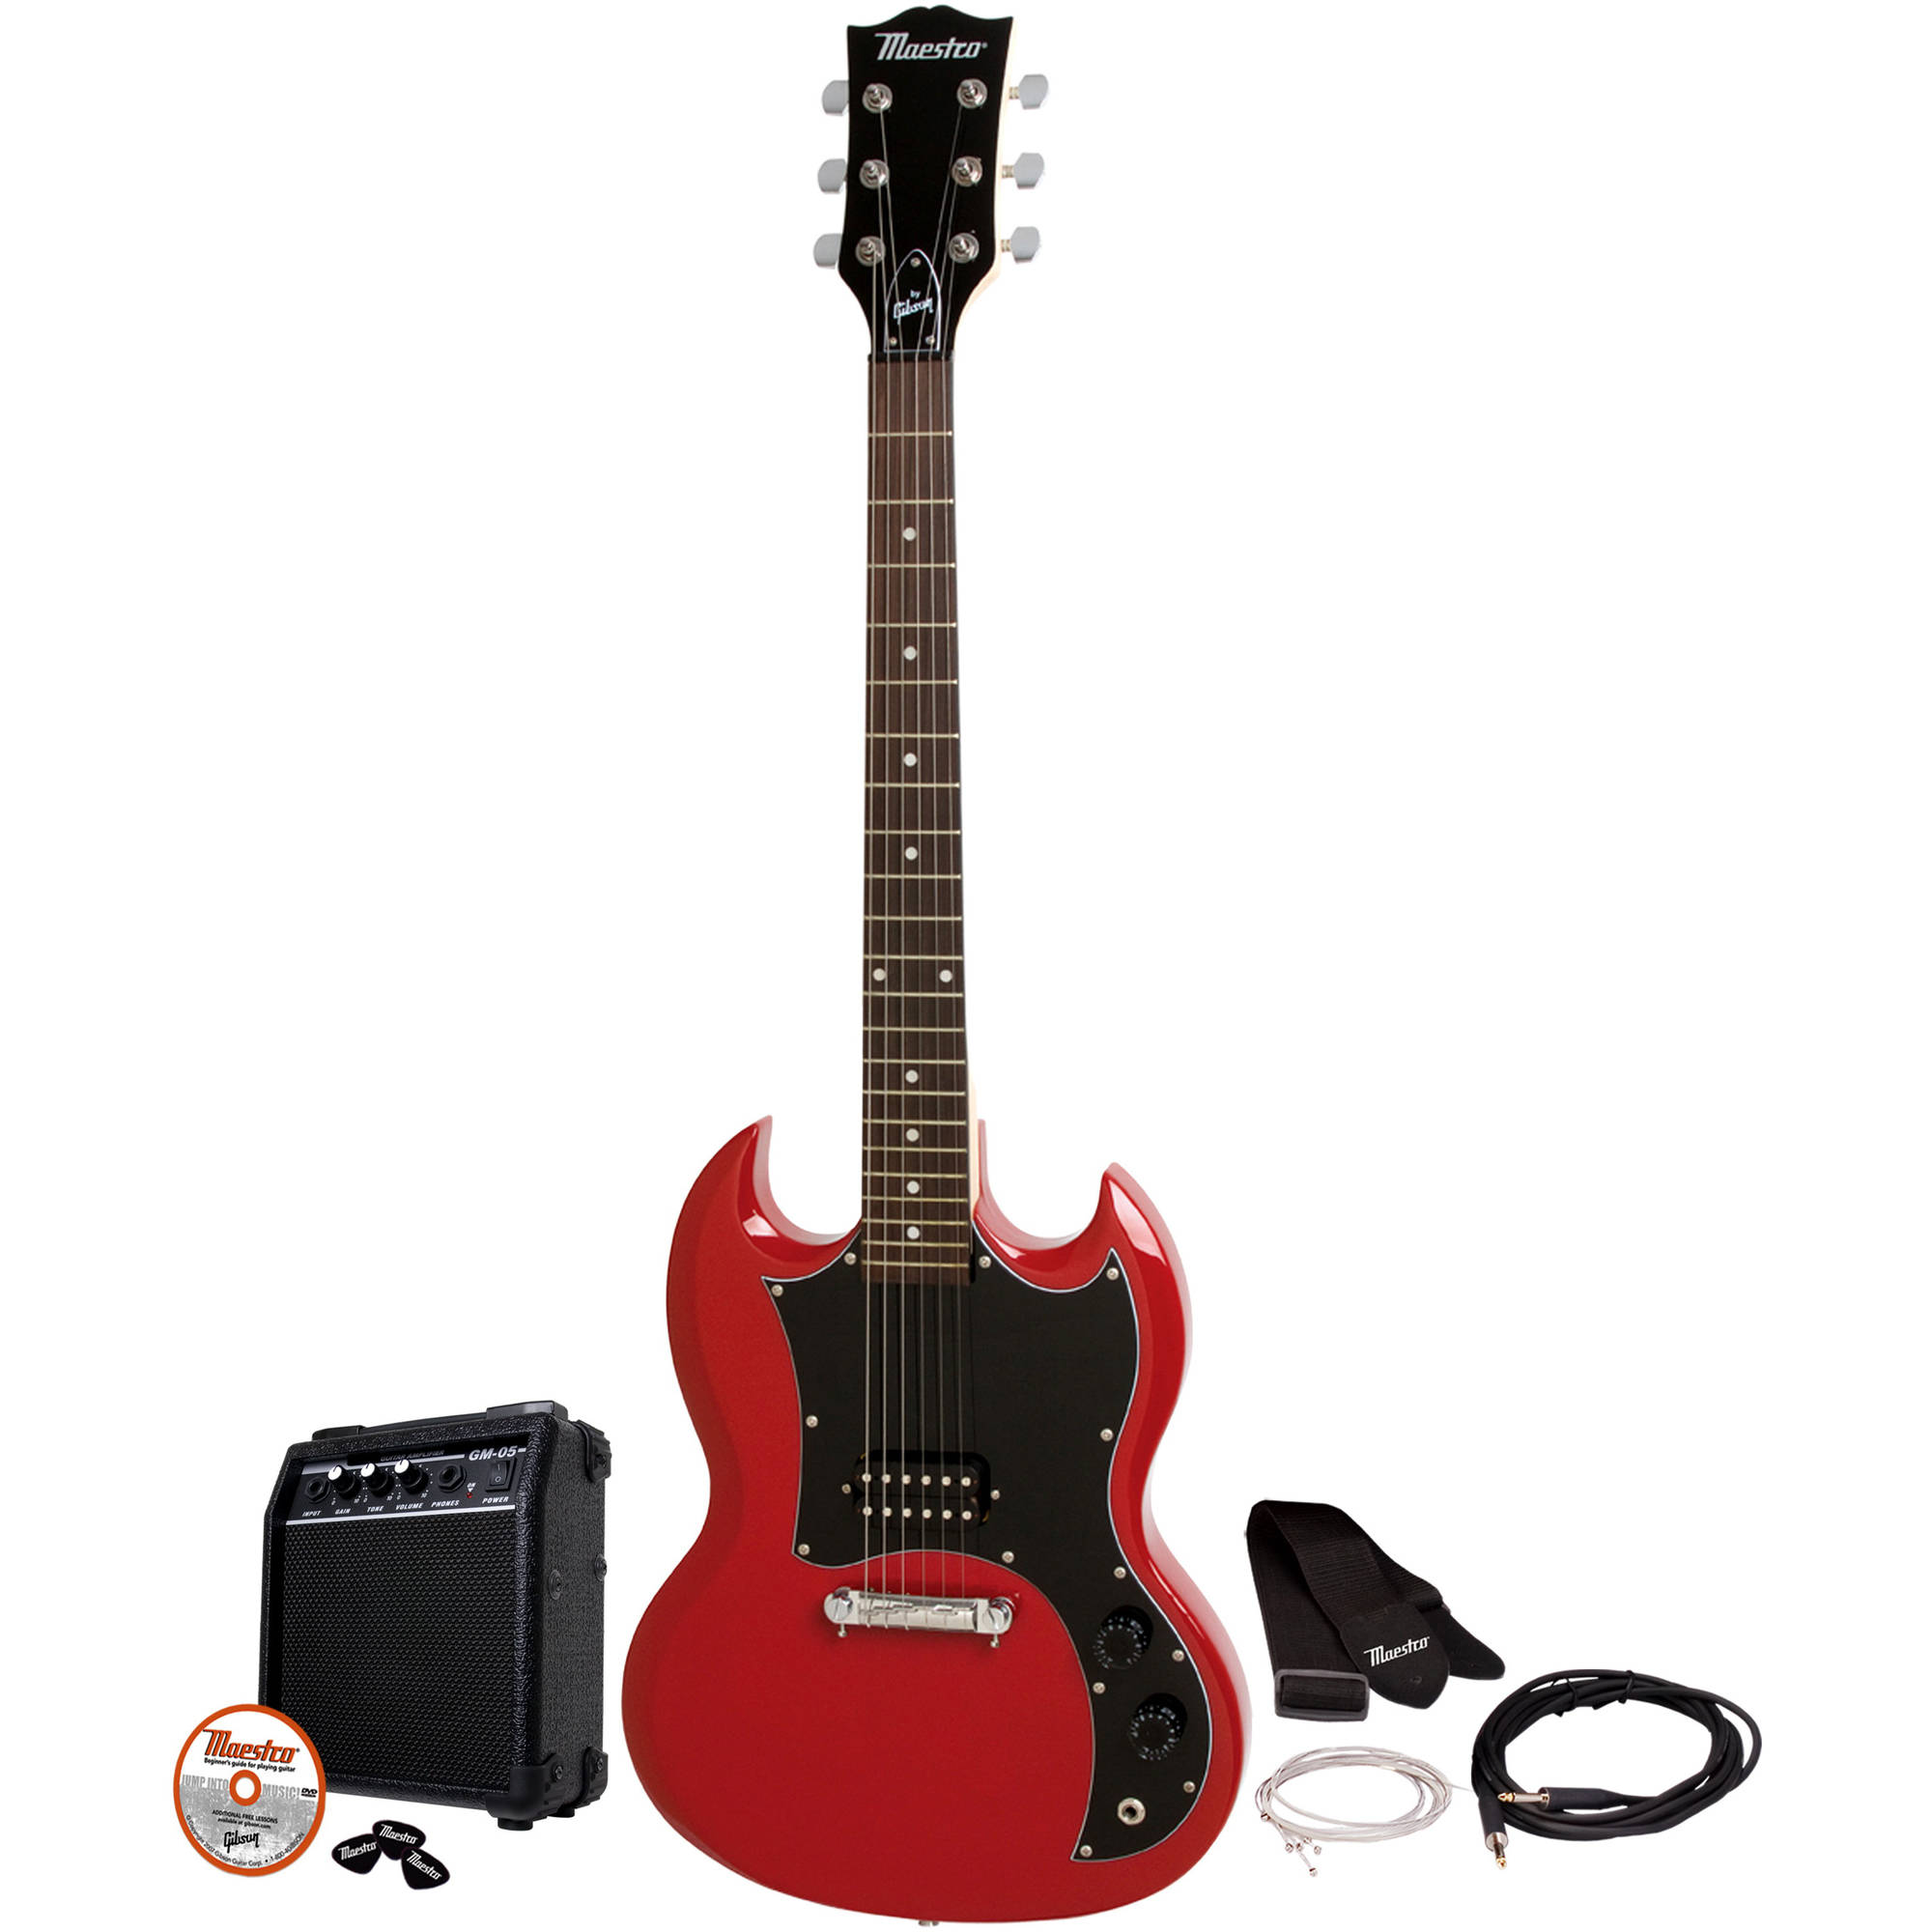 Maestro By Gibson Mesgbkch Double Cutaway Electric Guitar Kit Basic Circuits Part 1 Pickups